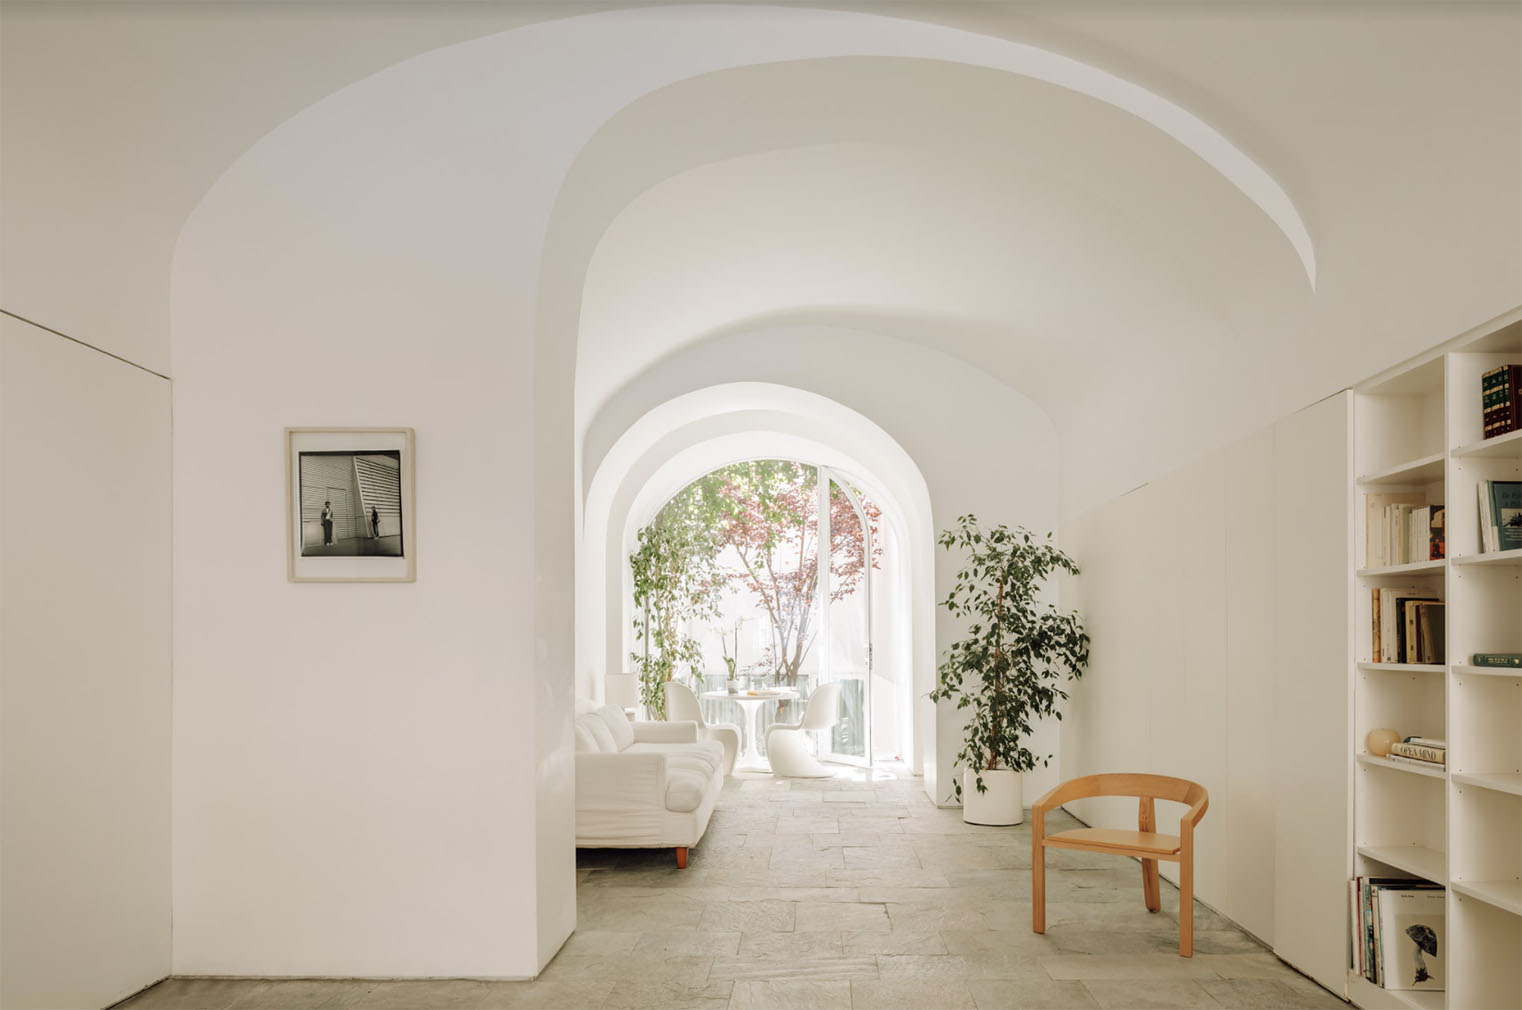 Interiors are minimalist, with focus placed on clean lines and skilled craftsmanship, while smooth arches and cool stone floors add drama to the architectural framing of its spaces.